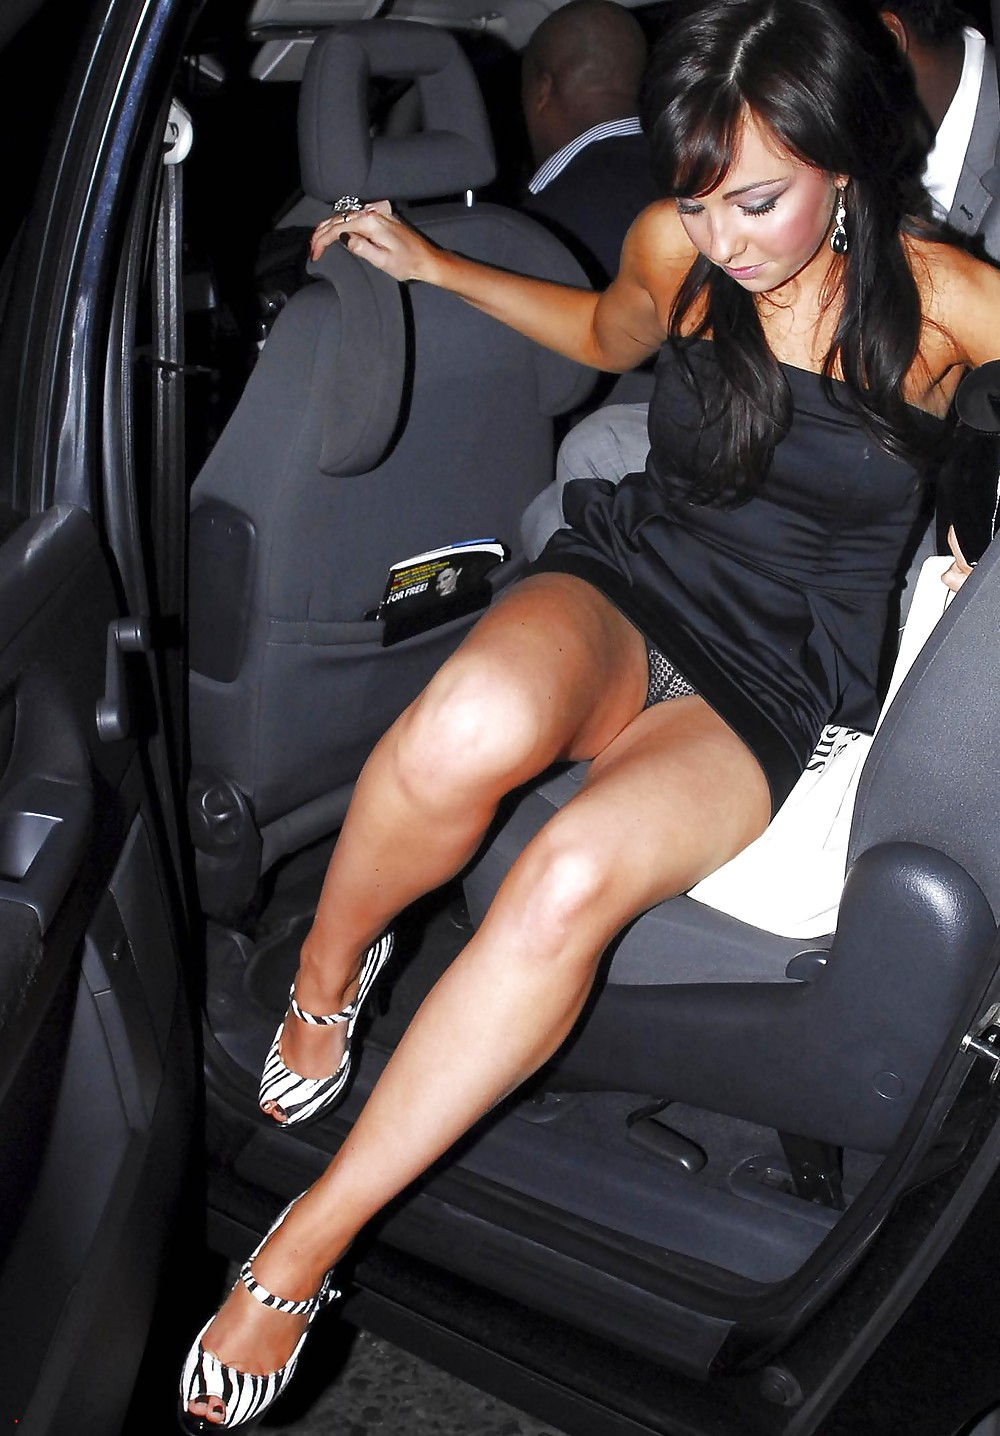 pic of Get out car upskirt